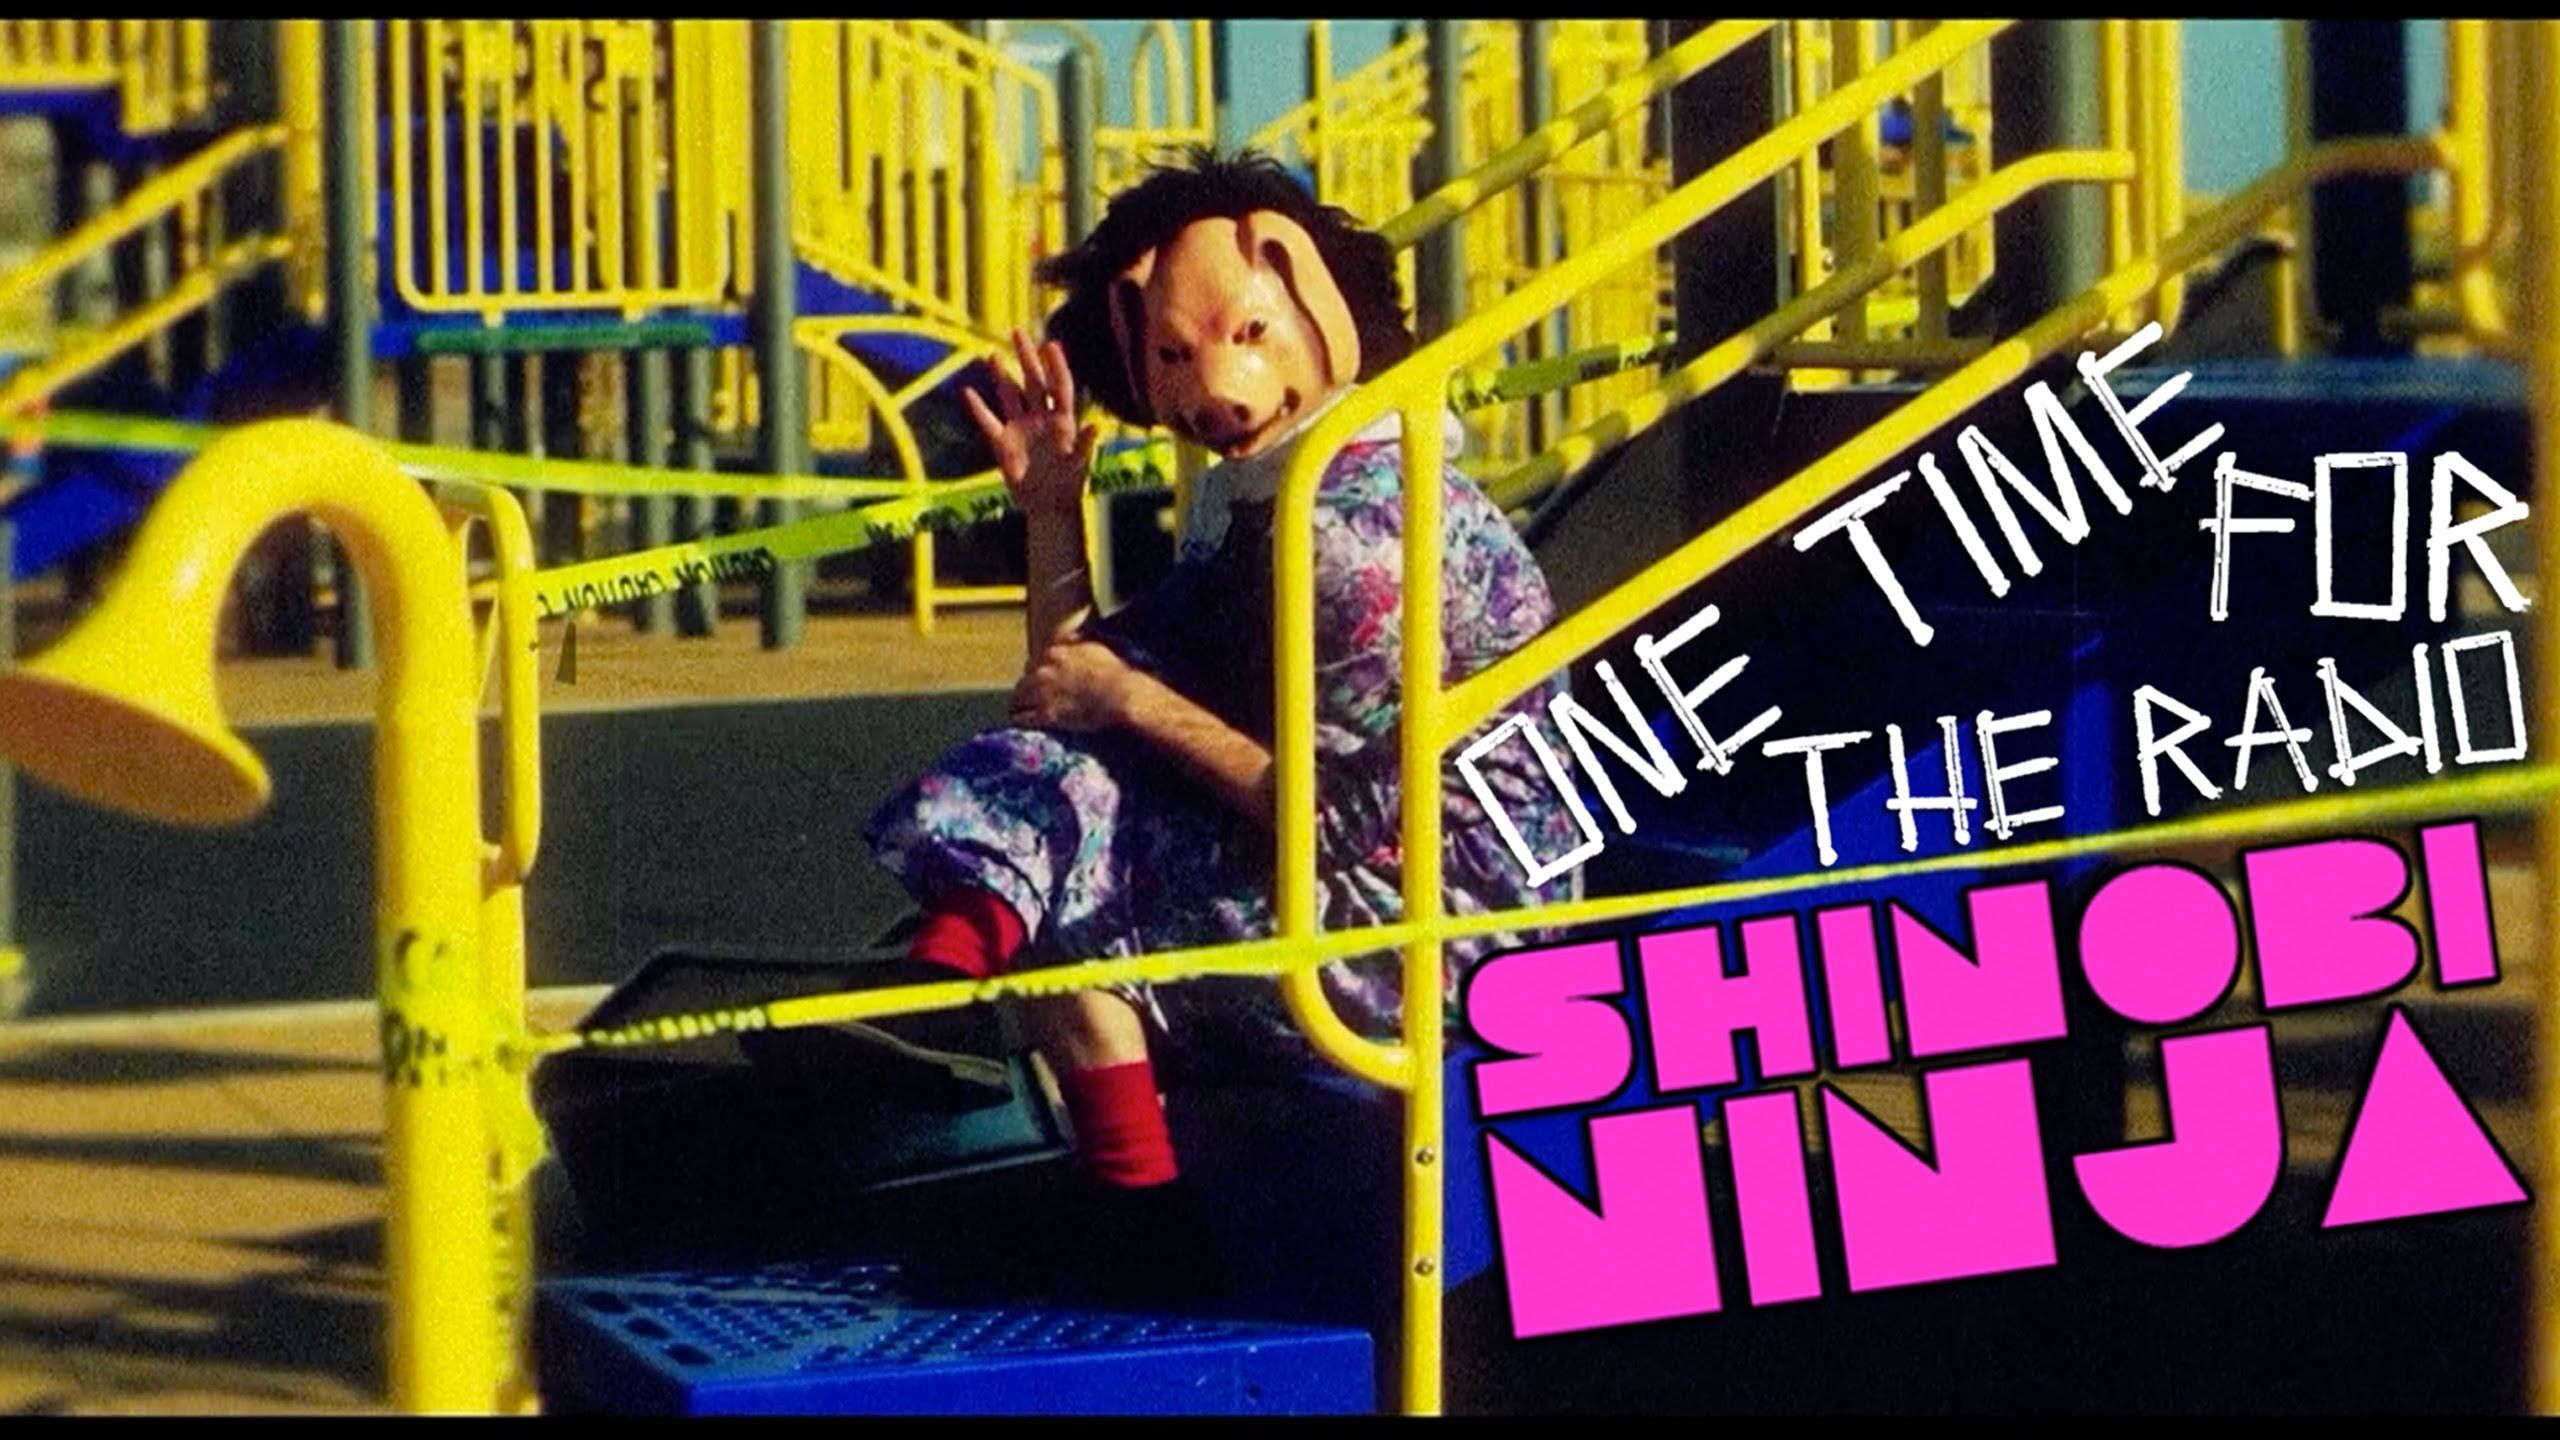 Shinobi Ninja - One Time For The Radio (Official) @ShinobiNinja